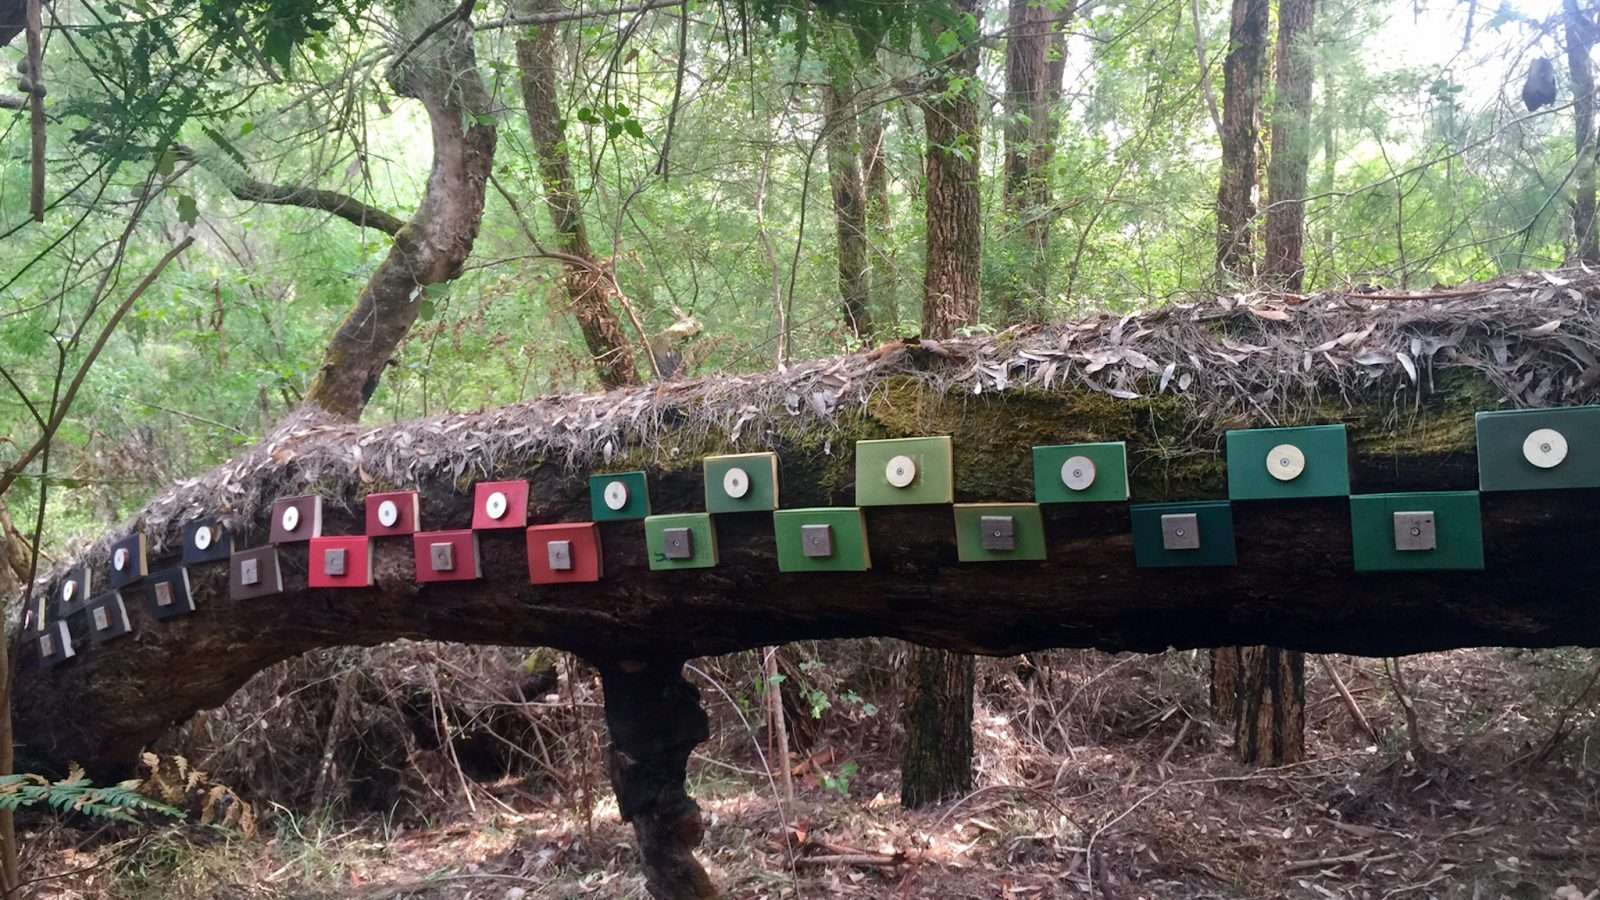 'Treecycle' a sculpture by Cecile Williams, featured along the Understory Art & Nature Trail, Northcliffe, Western Australia, commissioned by Southern Forest Arts in 2019